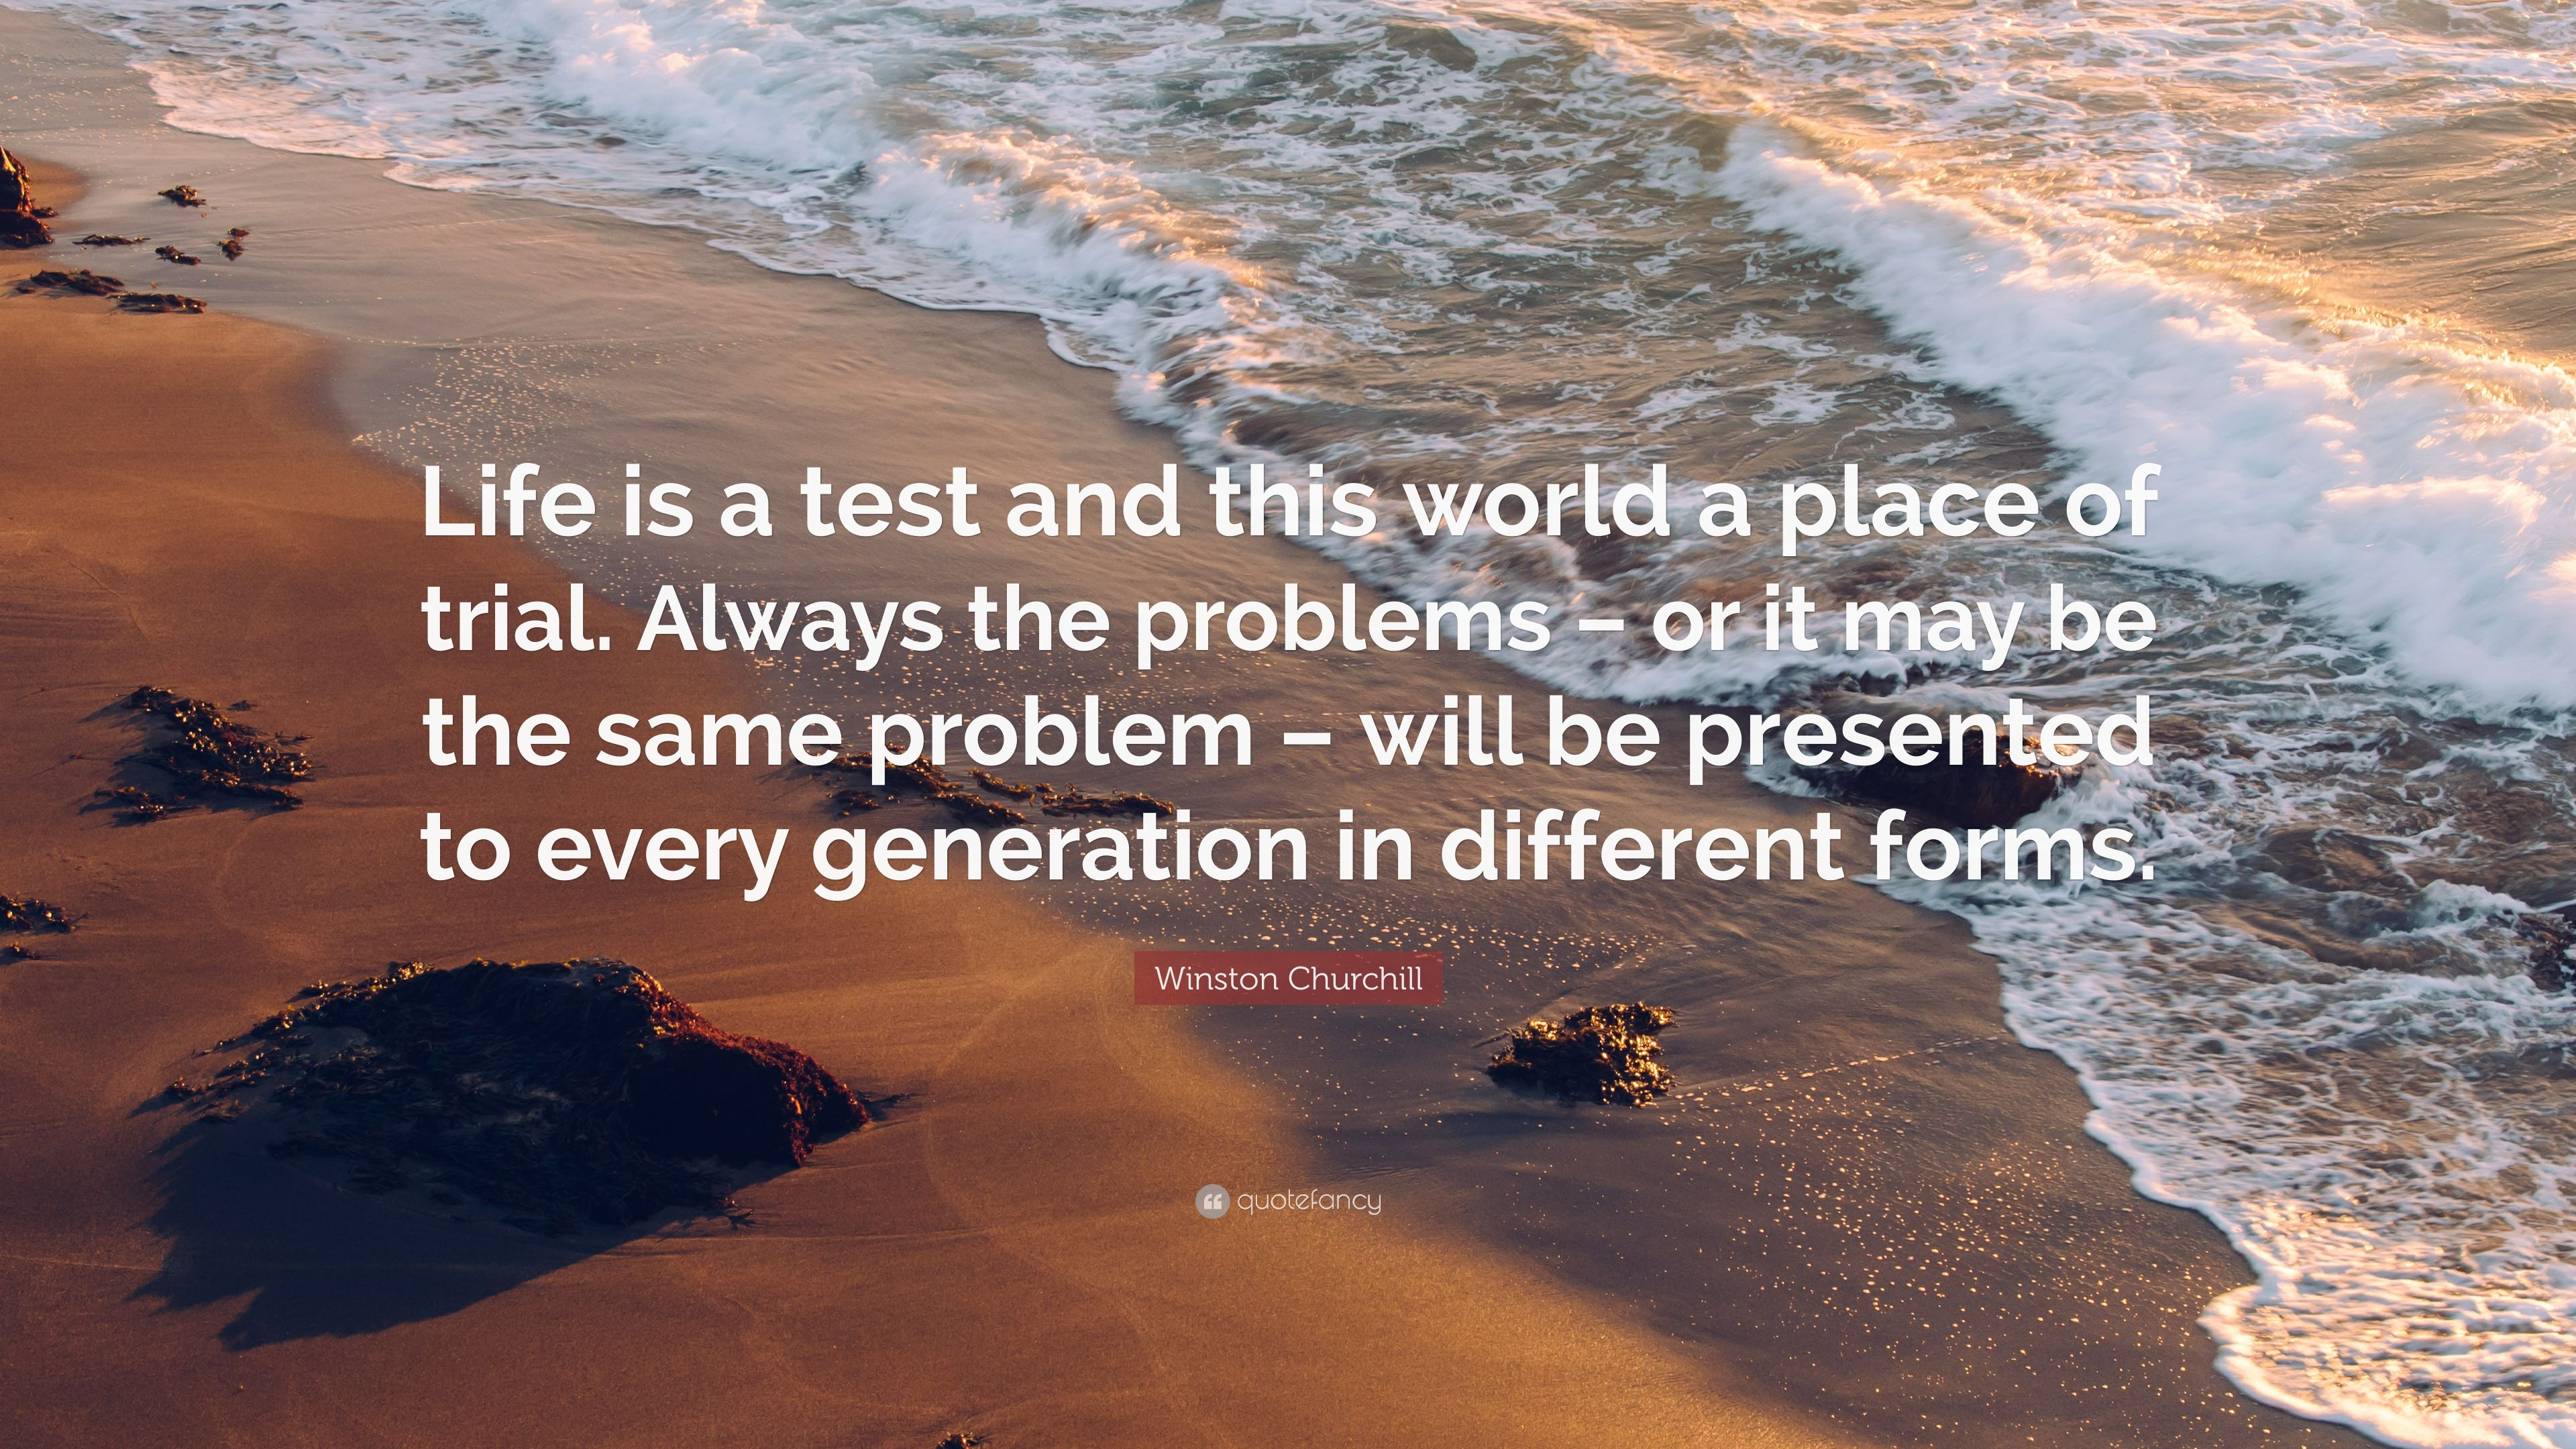 Winston Churchill Quote Life Is A Test And This World A Place Of